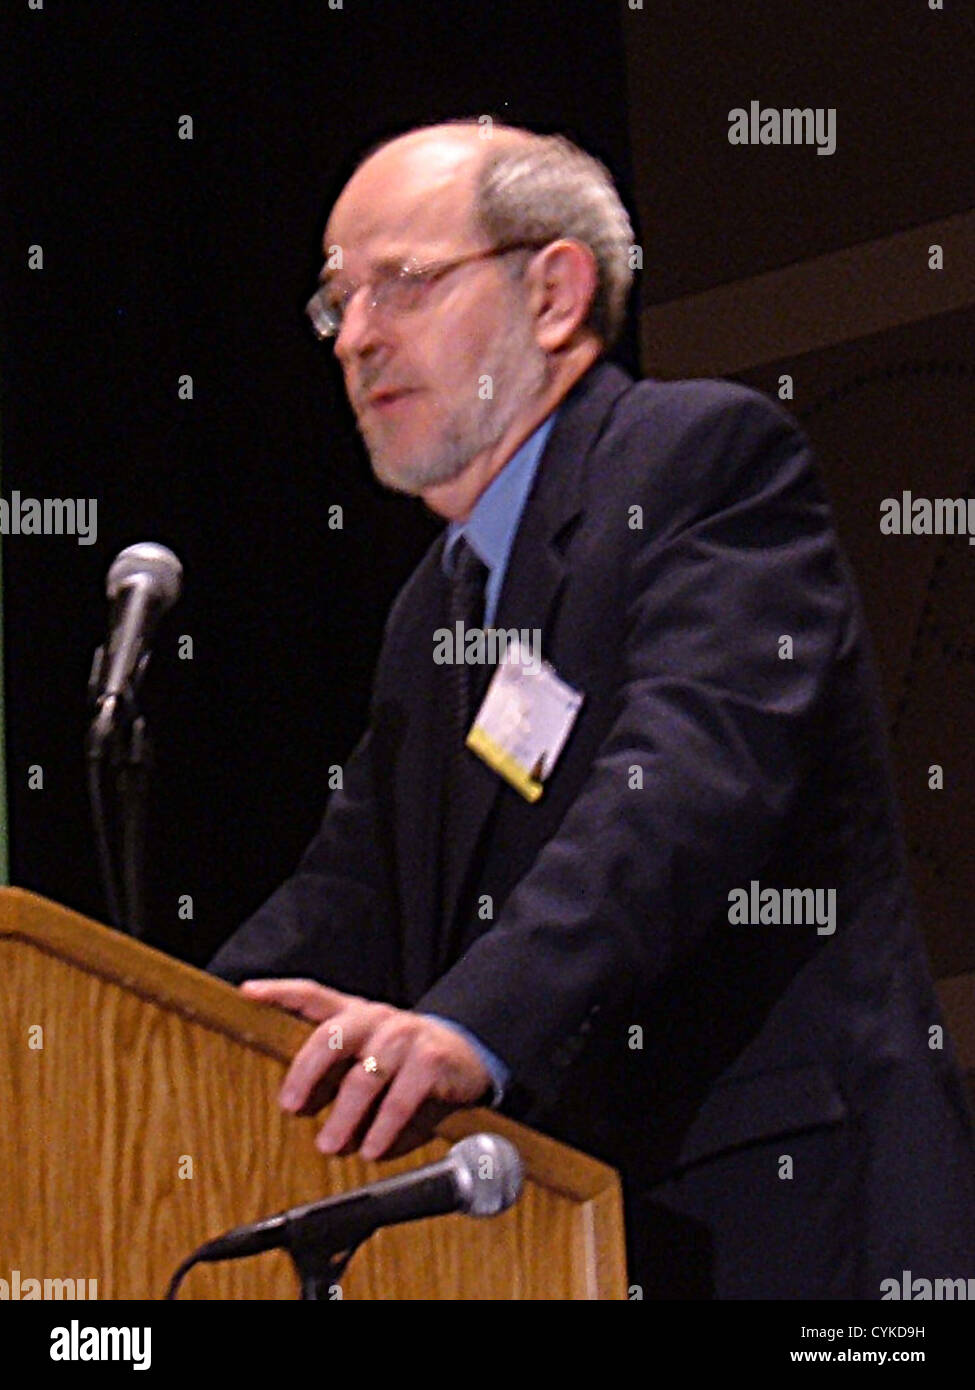 Ronald G. Douglas, Distinguished Professor in the Department of Mathematics at Texas A&M University. Photographed - Stock Image